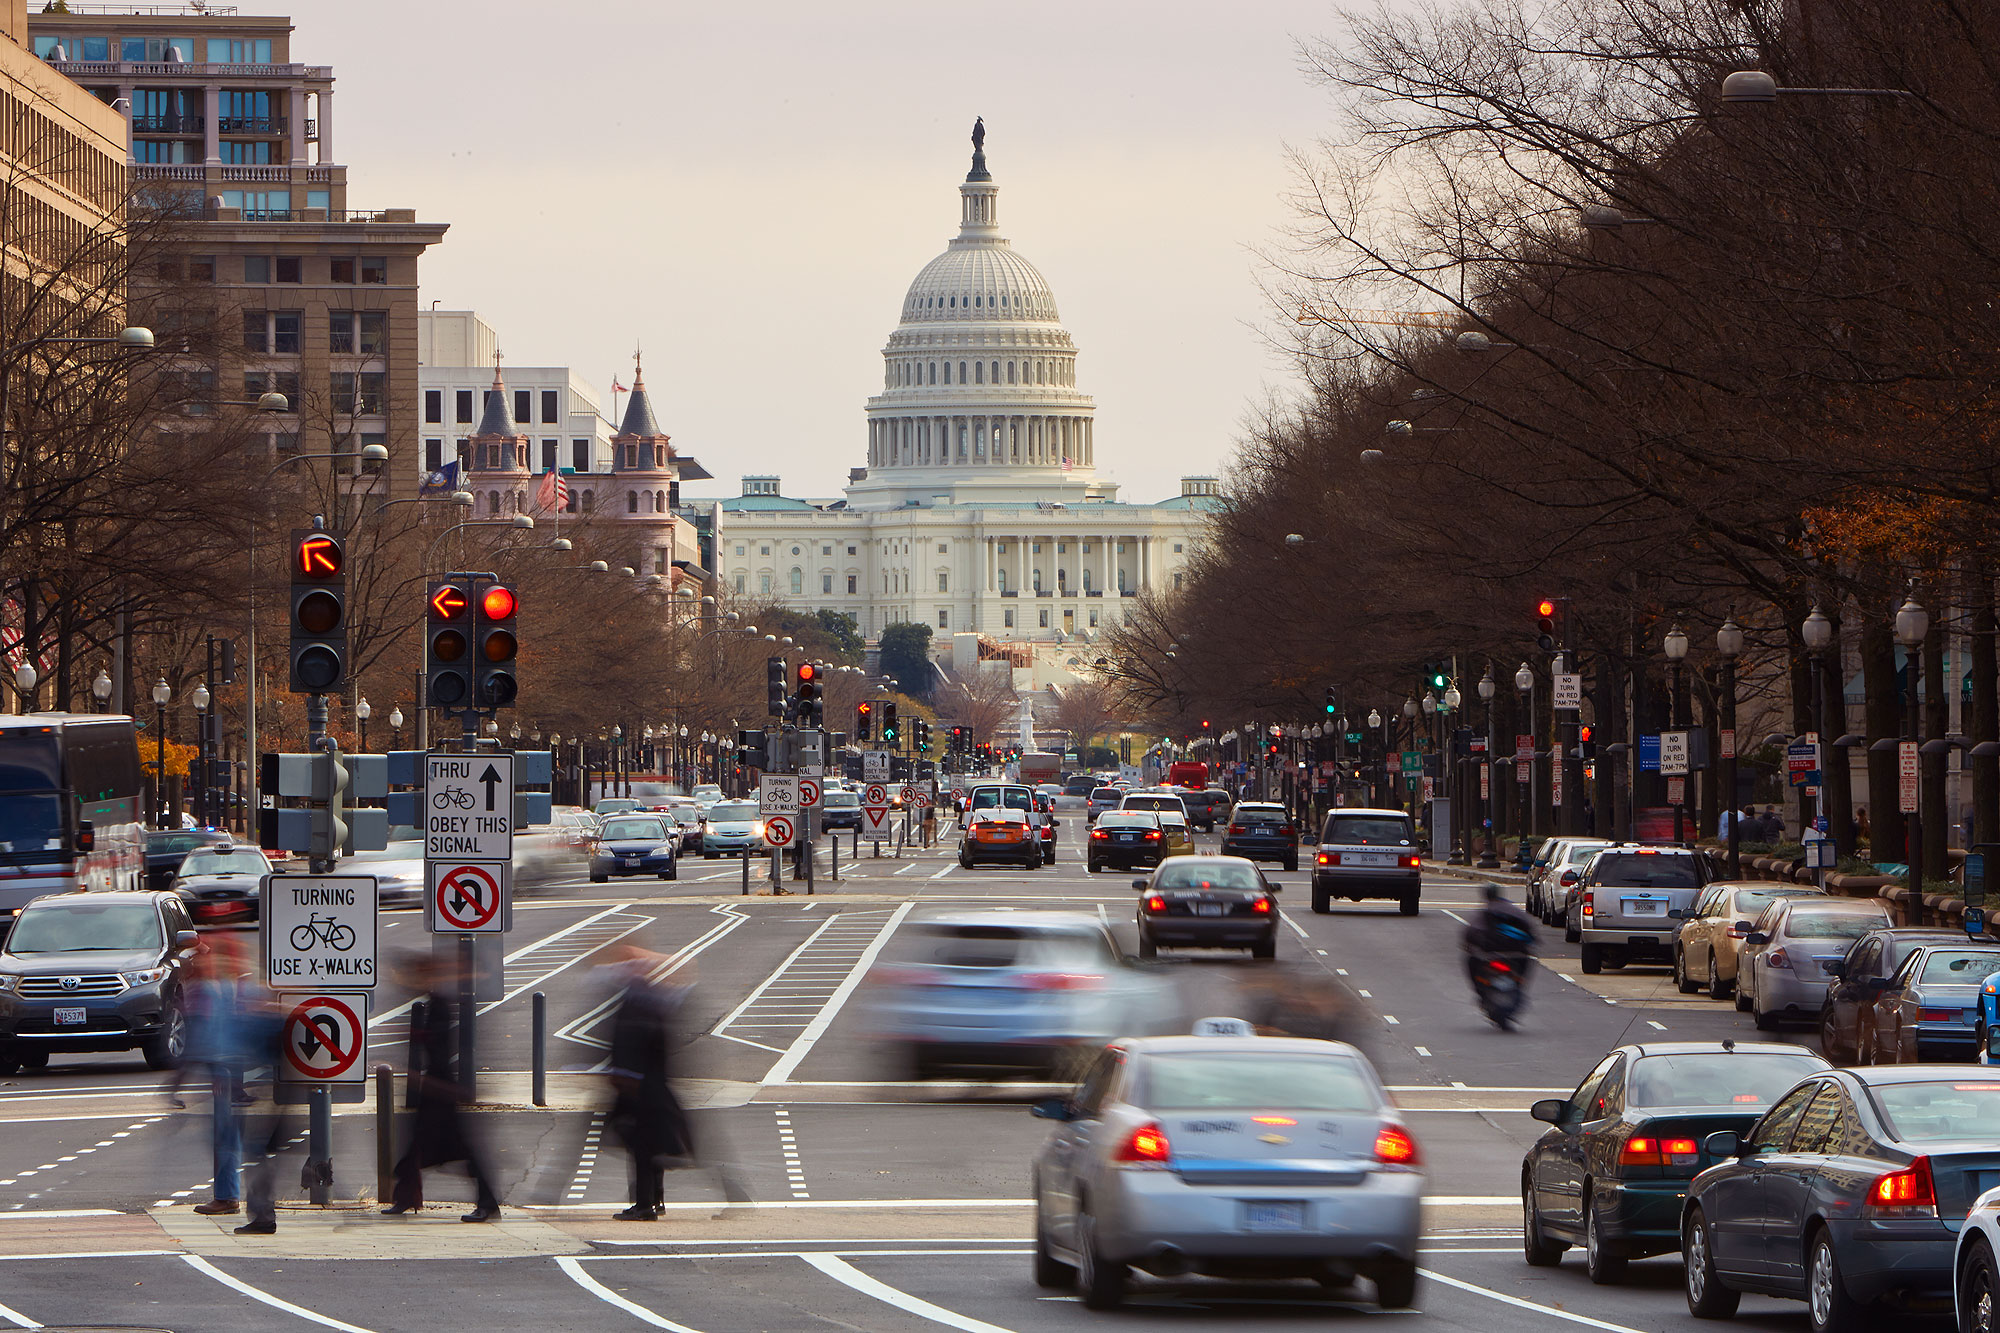 US Capitol building at street